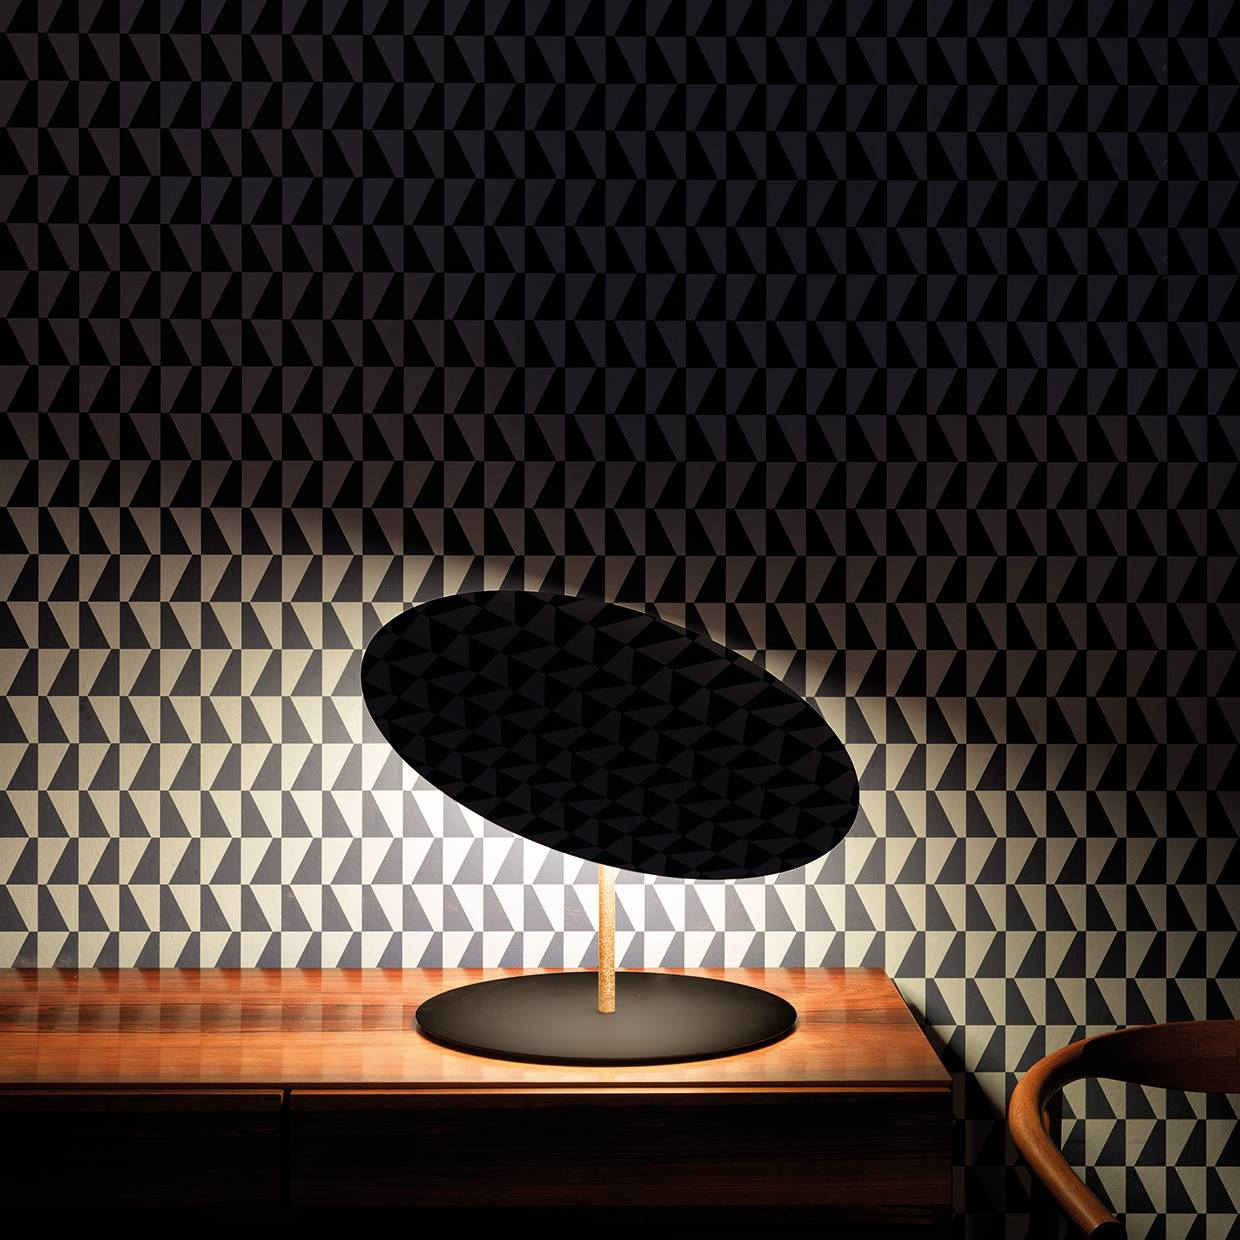 small round table lamp on a wooden desk with a patterned wallpaper with black and white geometric shapes